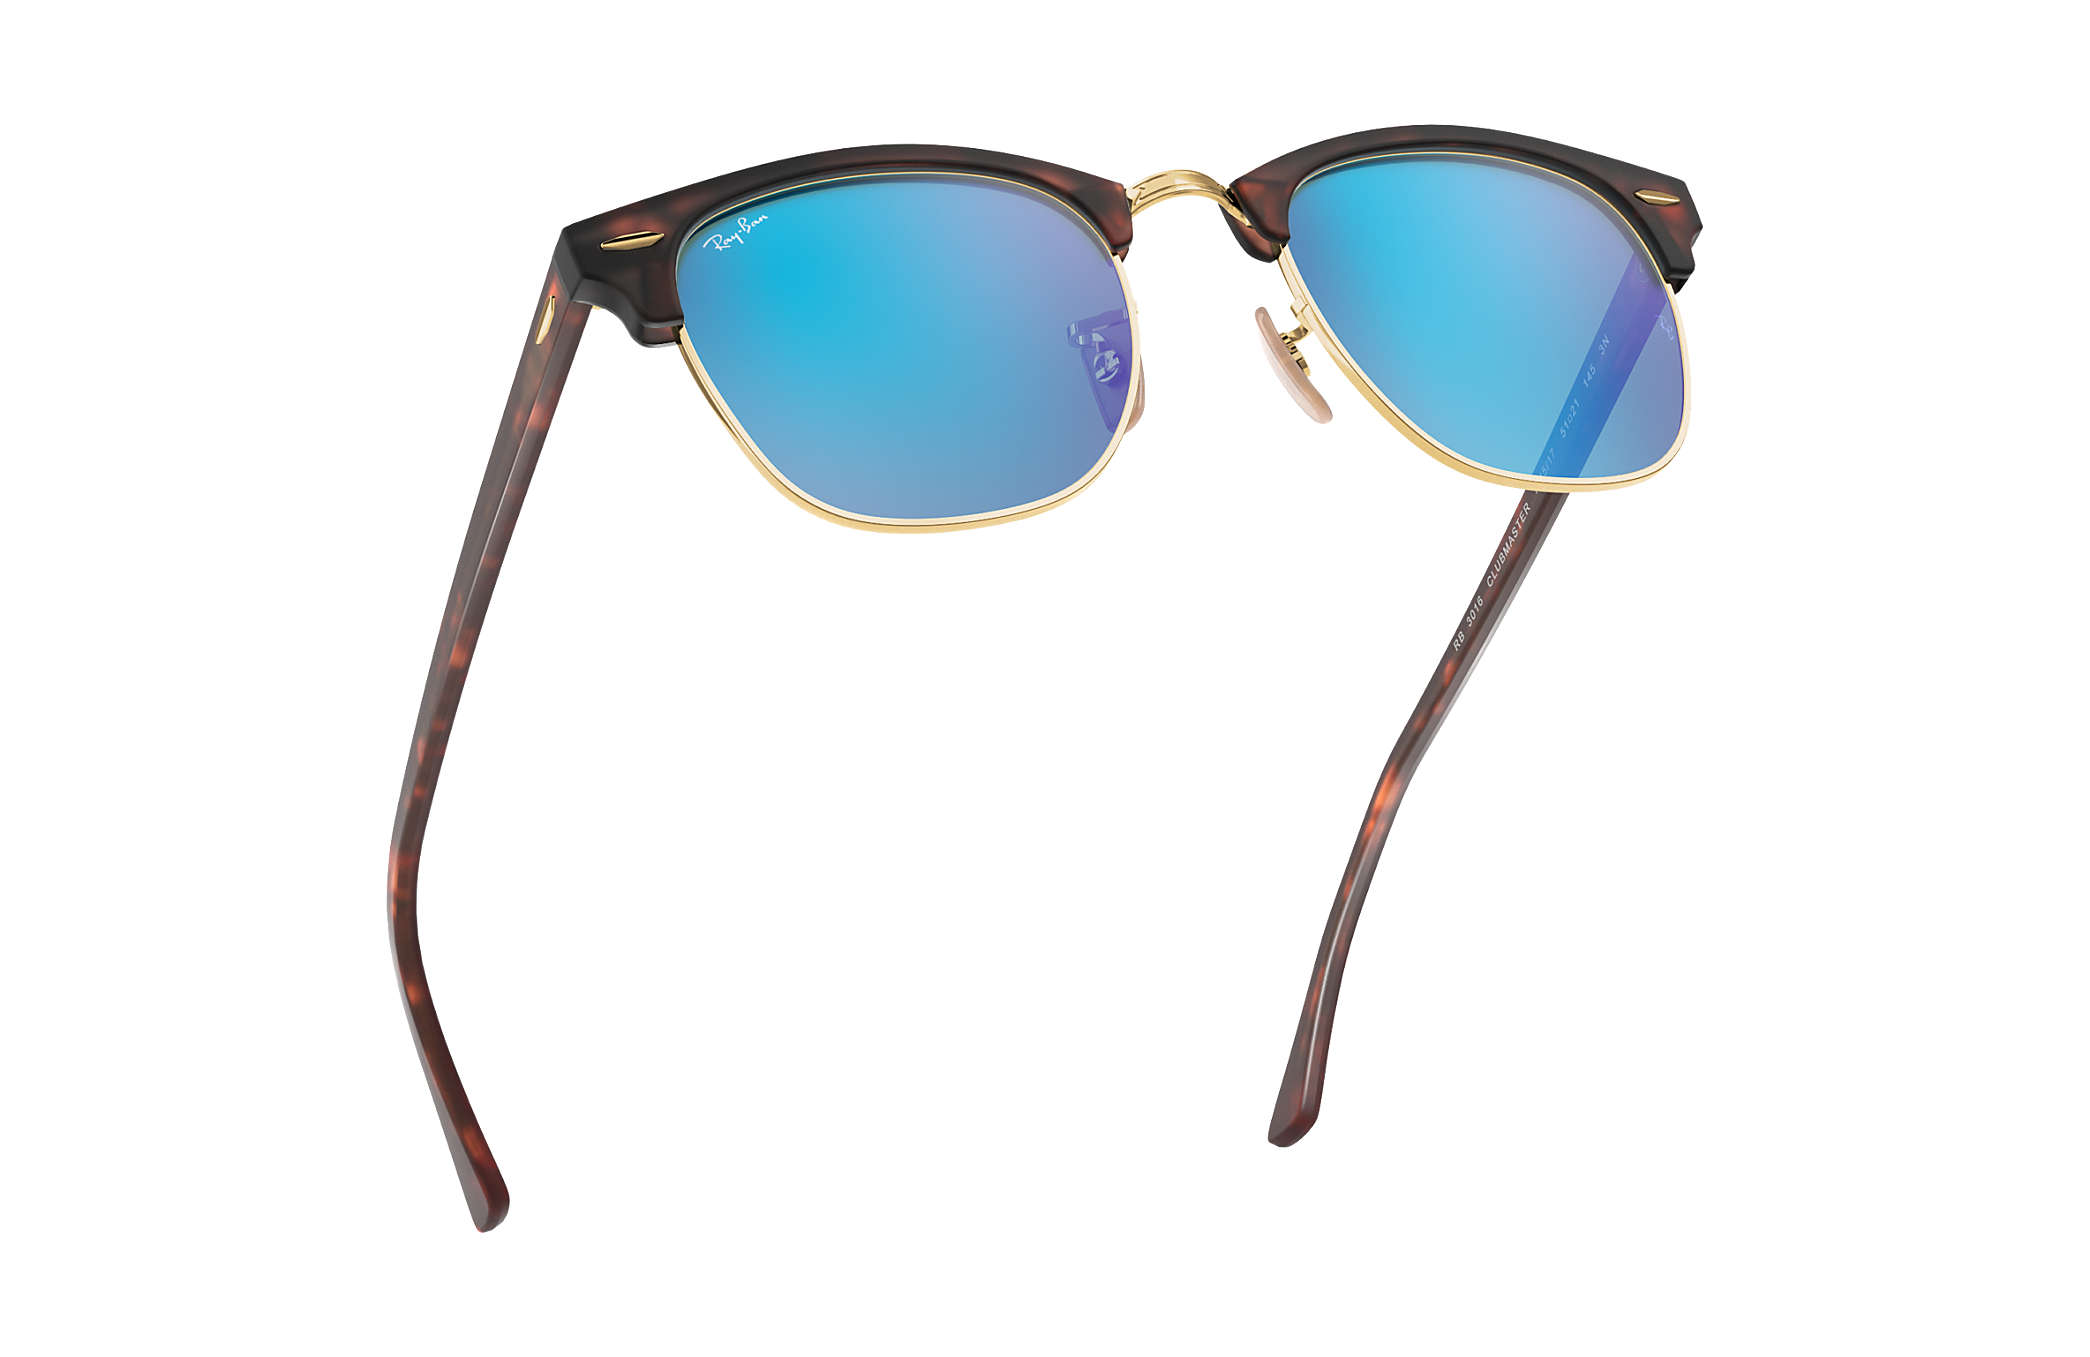 415a31bb285468 Ray-Ban Clubmaster Flash Lenses RB3016 Tortoise - Acetate - Blue ...